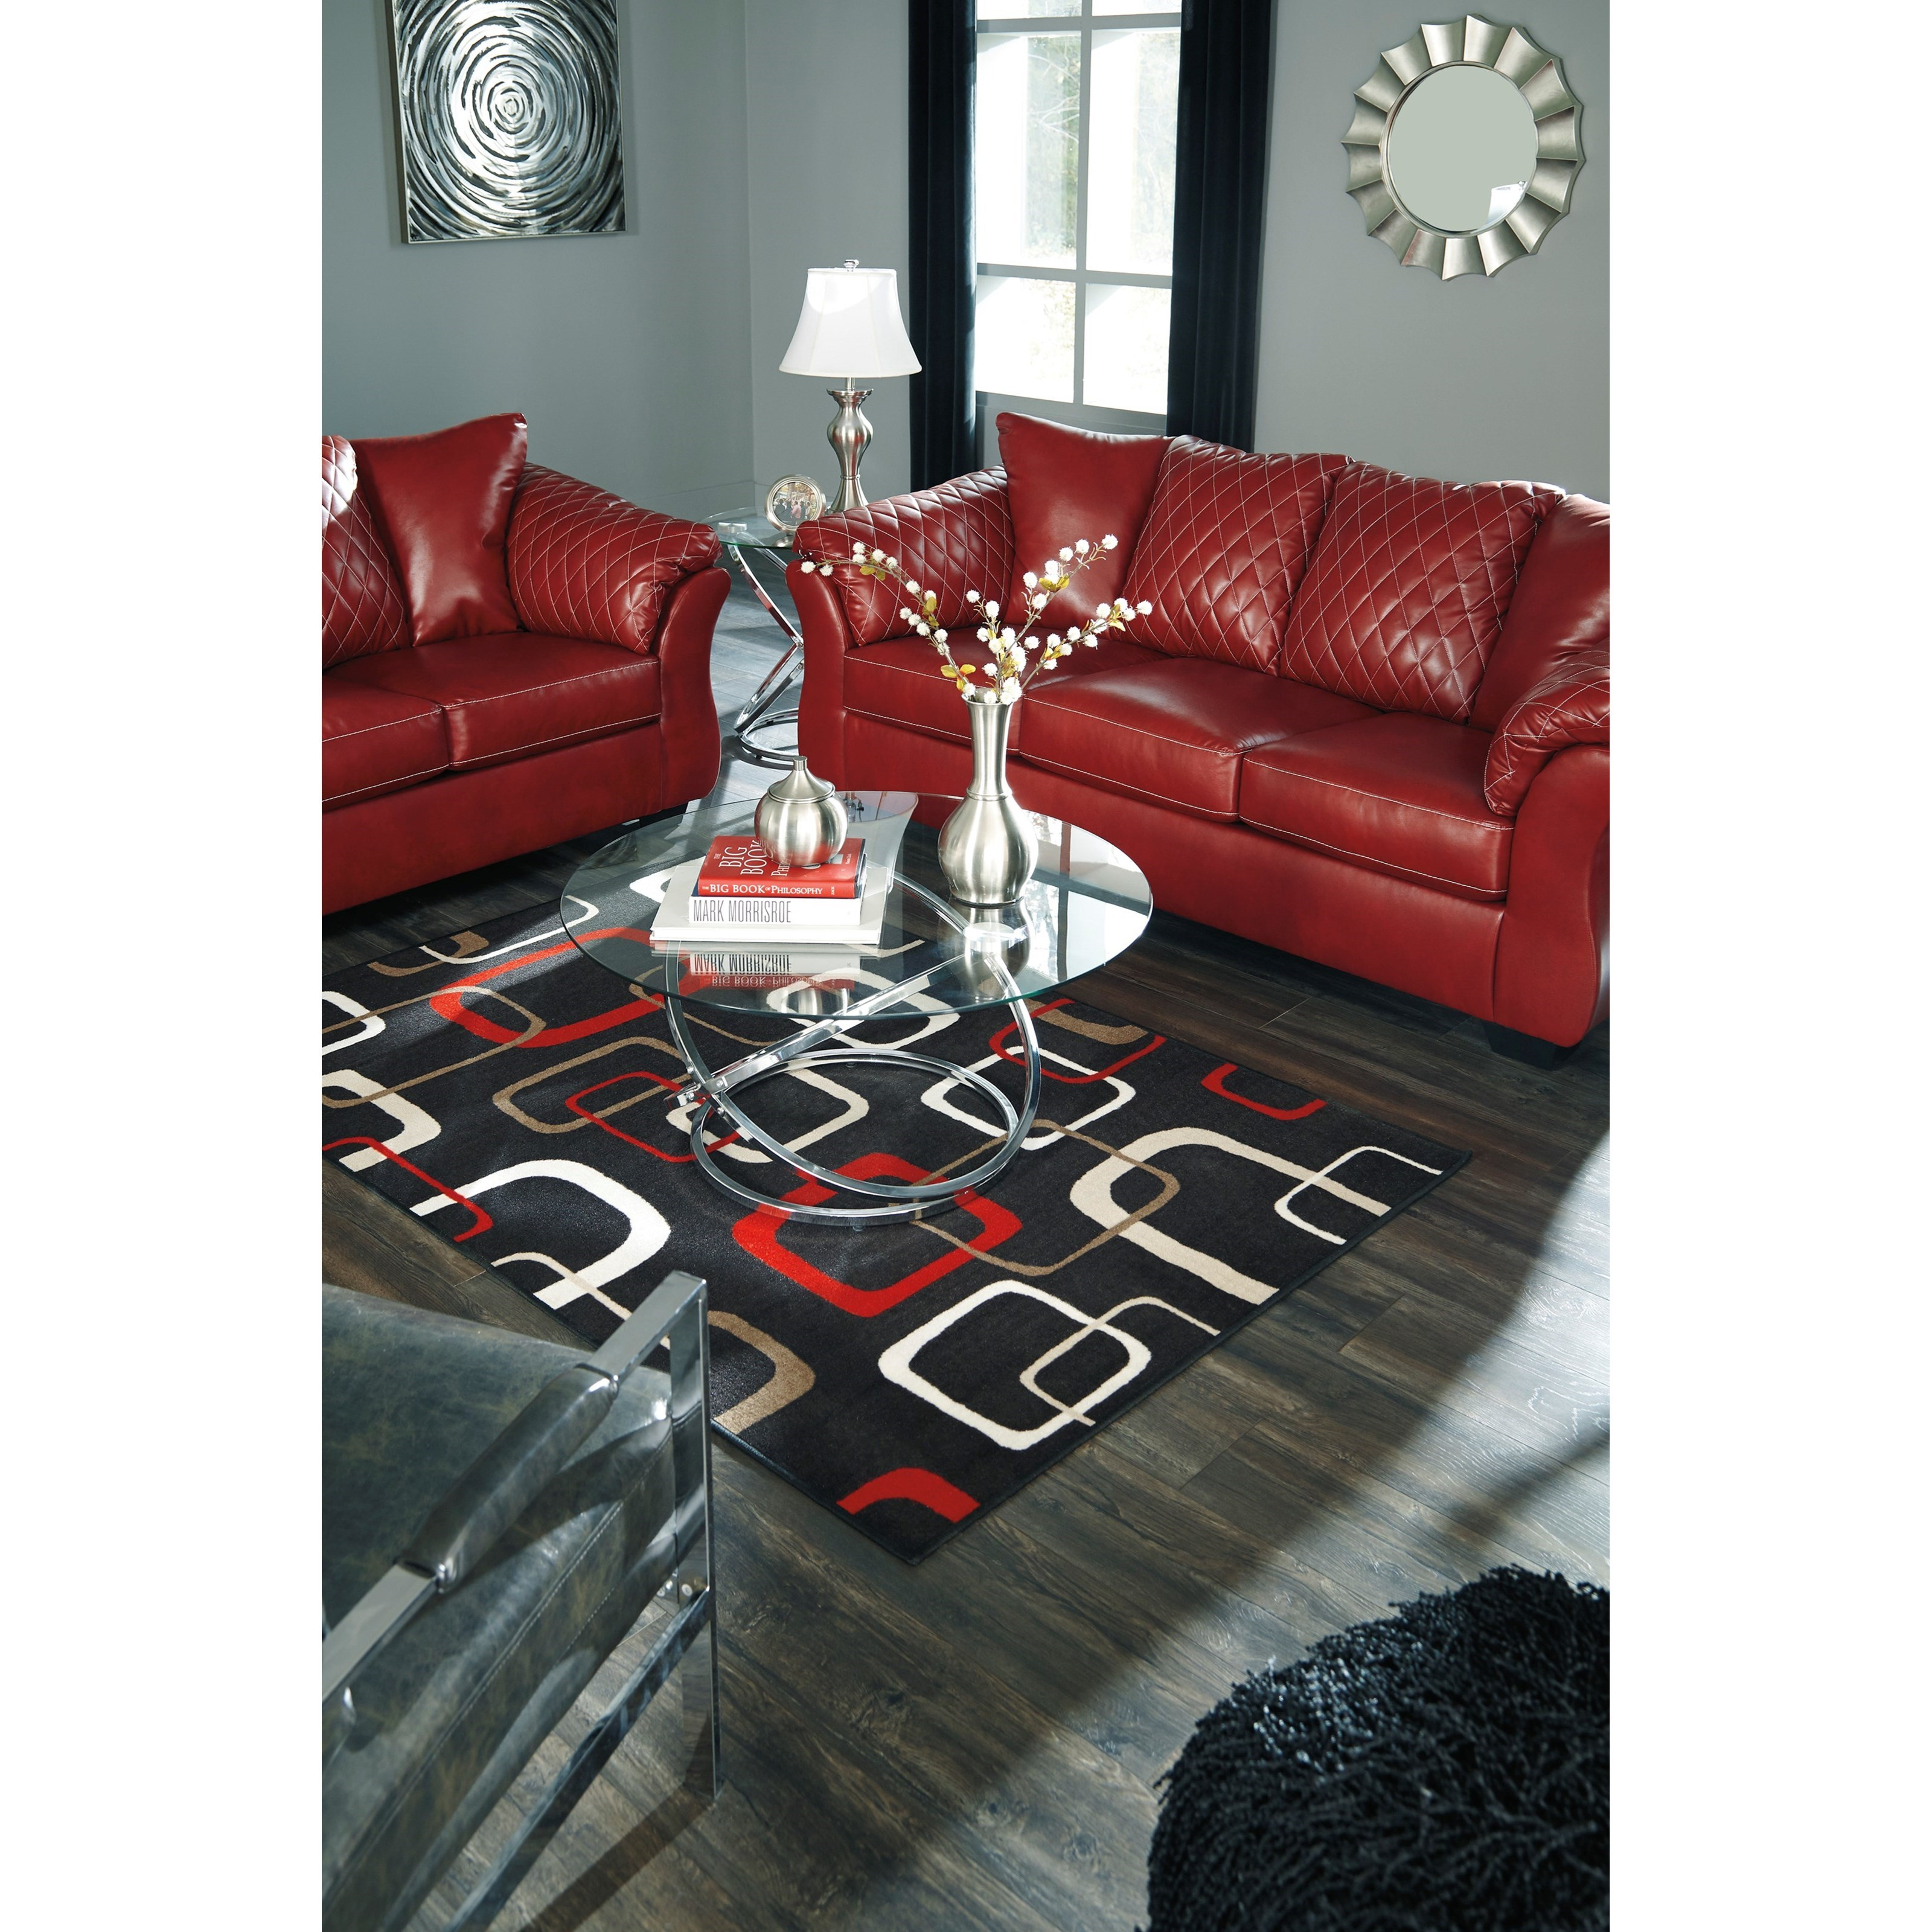 Ashley Furniture Texas Locations: Signature Design By Ashley Betrillo Contemporary Sofa With